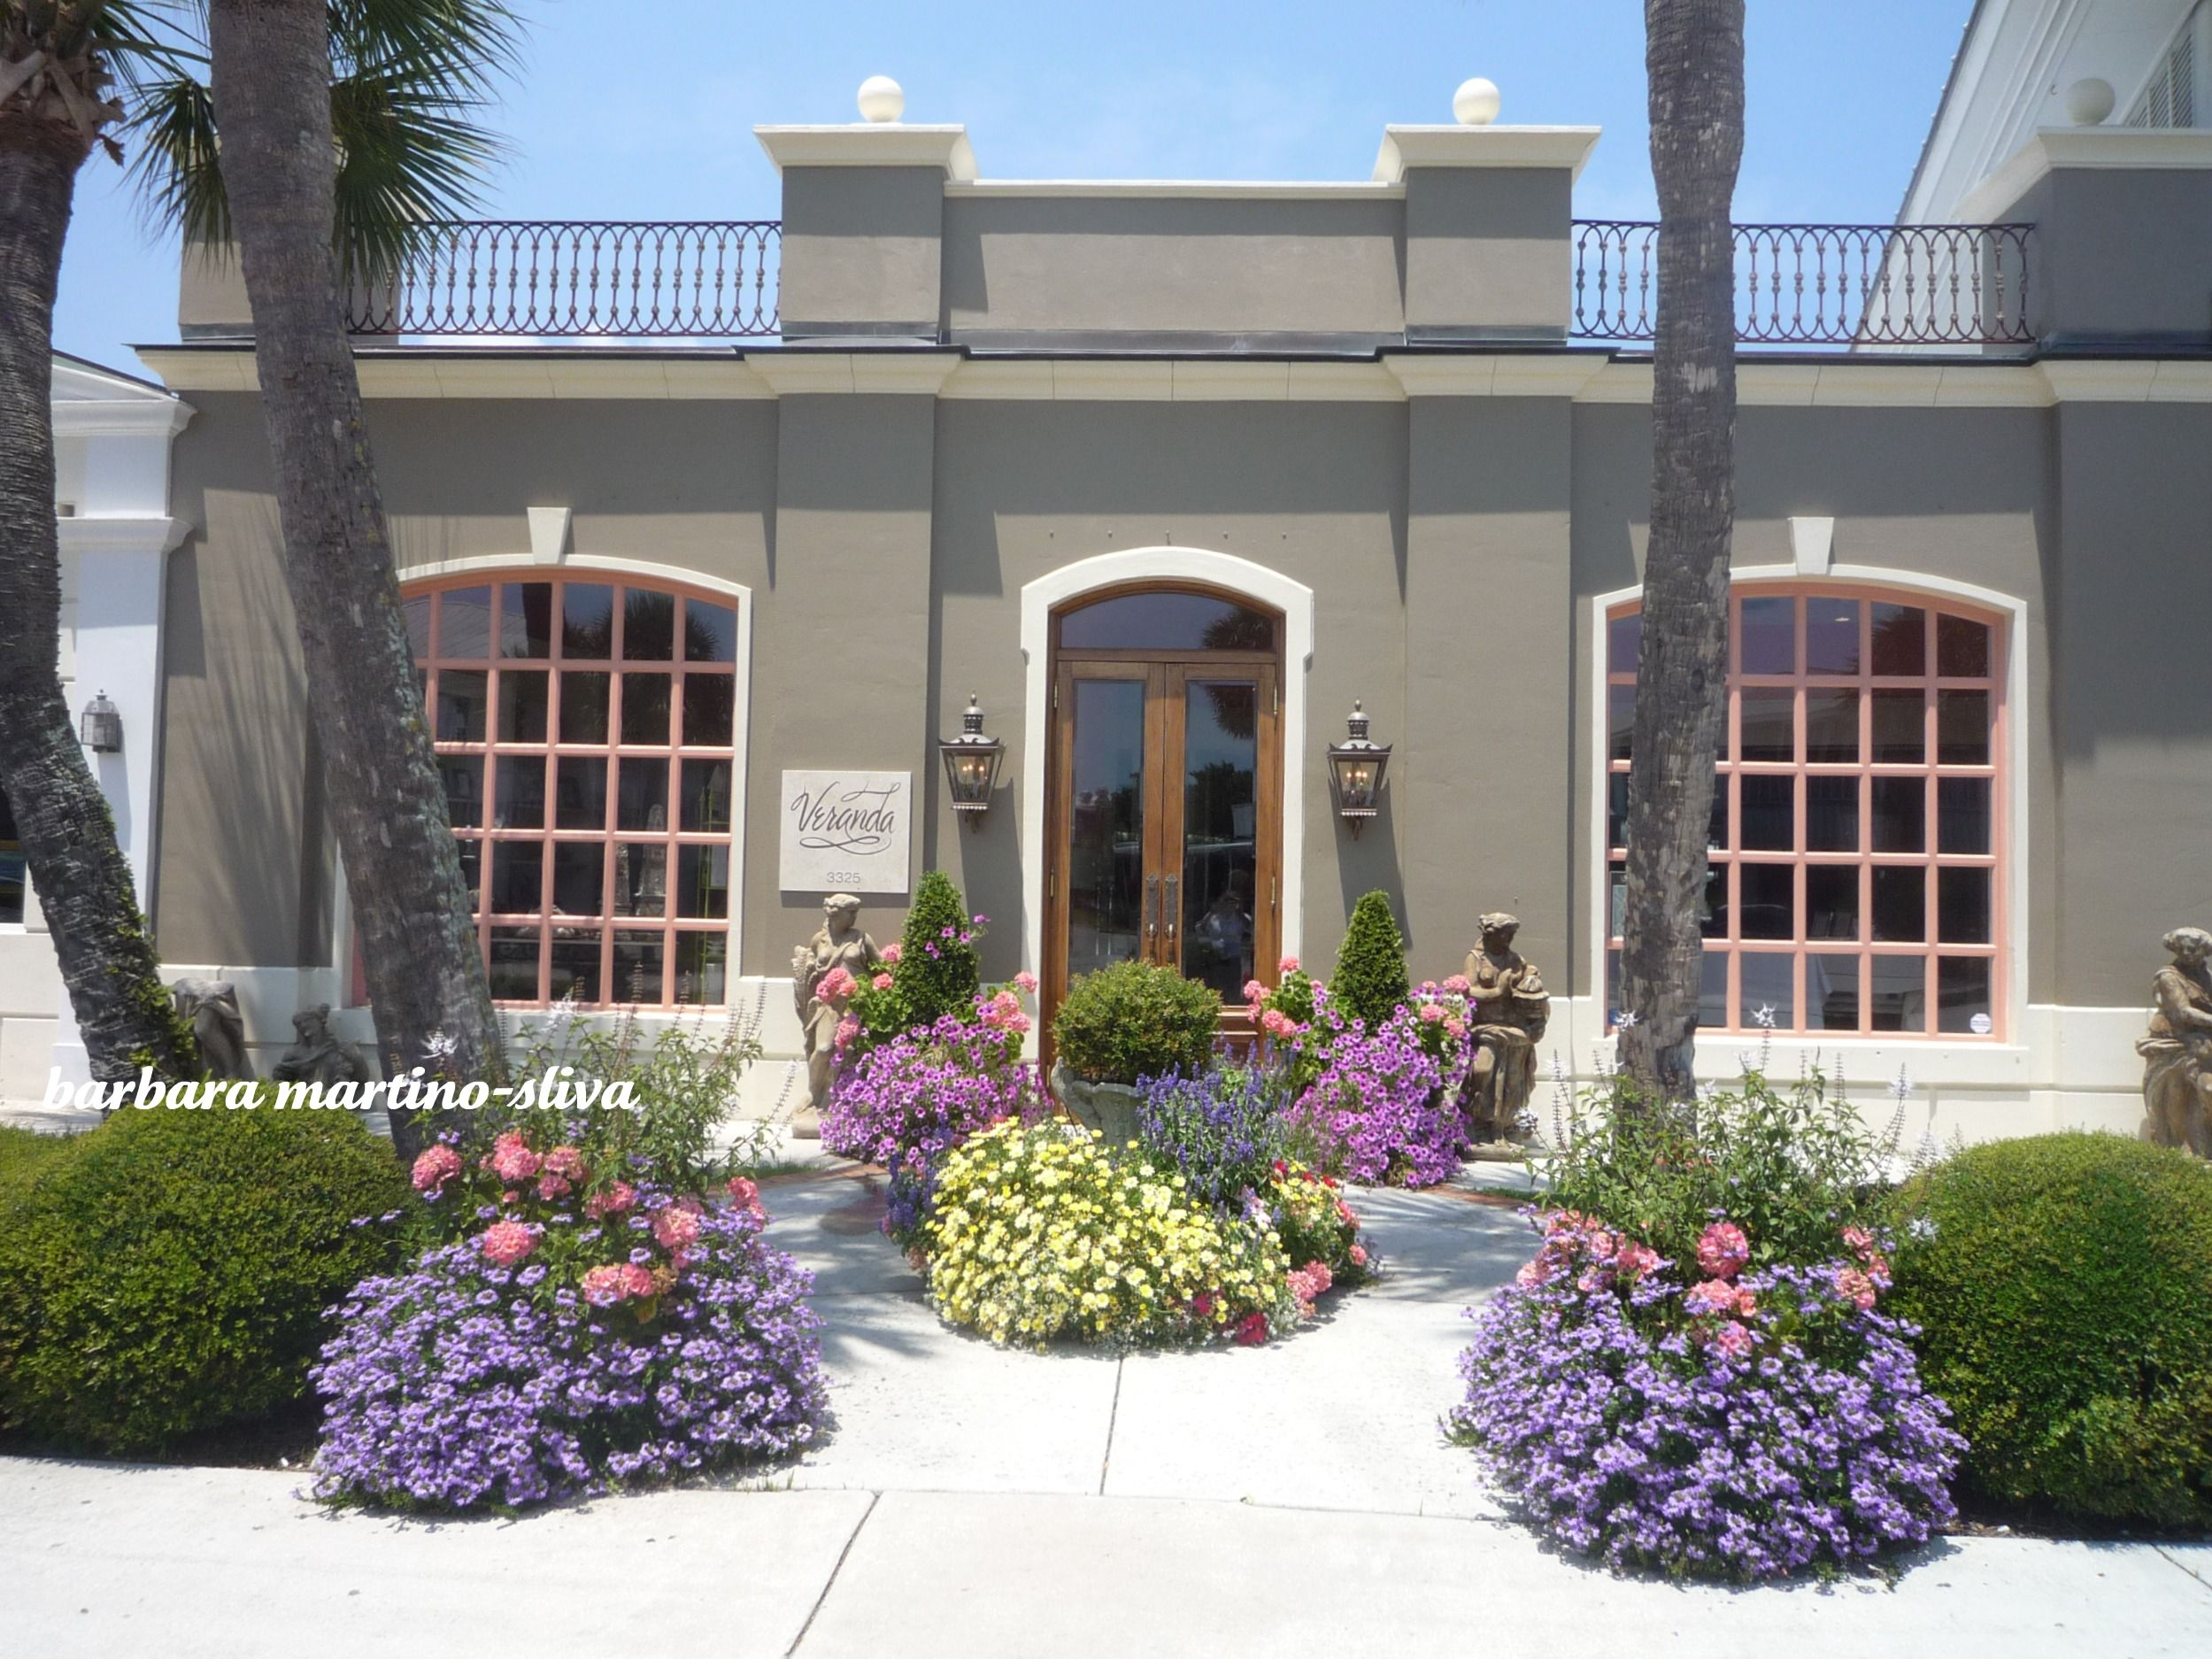 Vero Beach Island Lifestyle Ocean Drive Offers One Of A Kind Boutiques